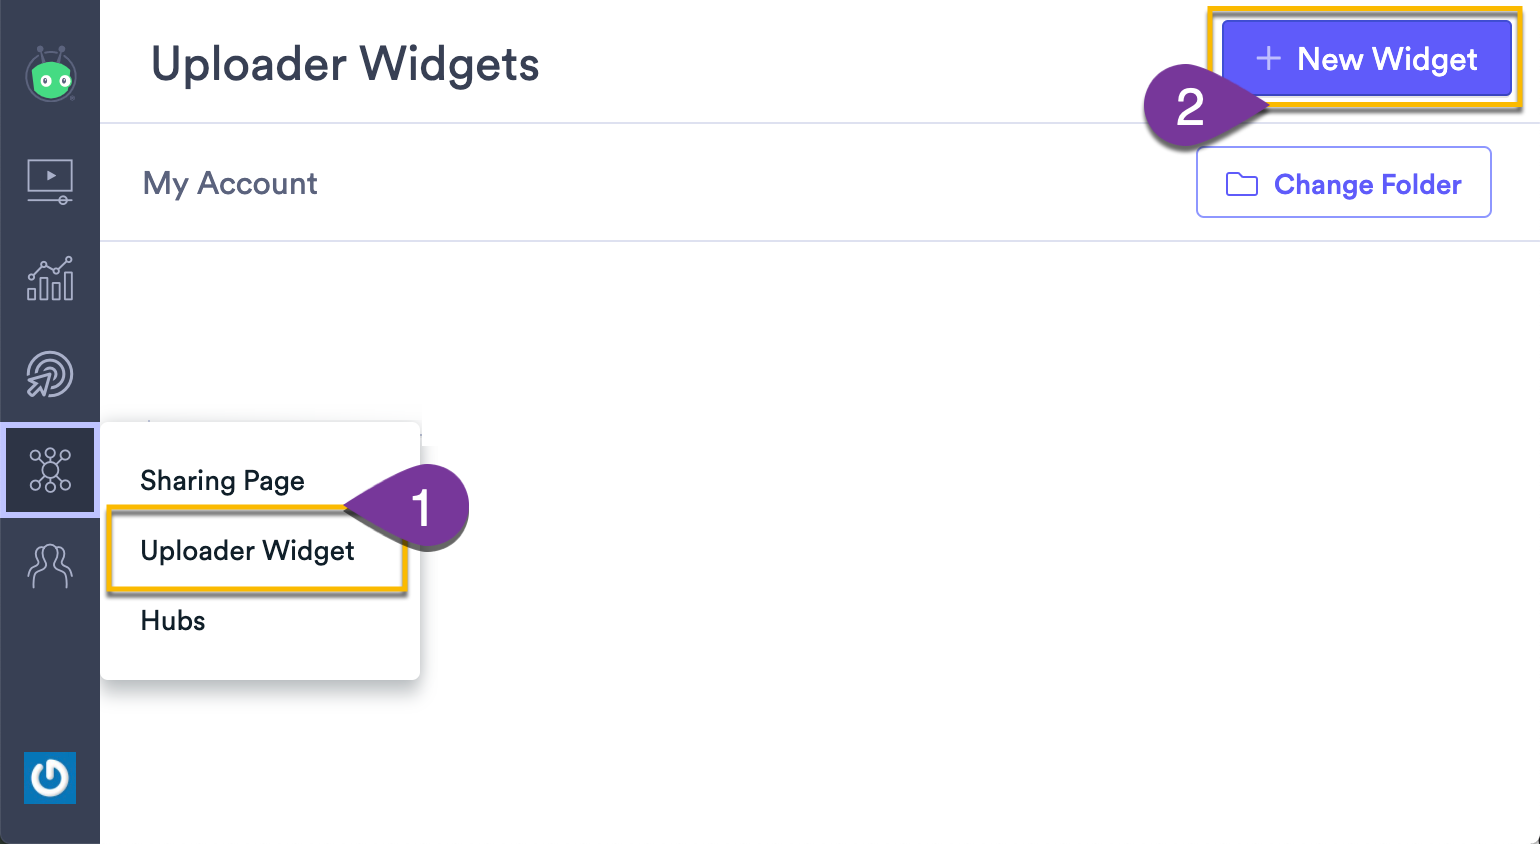 Selecting the button to create a new uploader widget